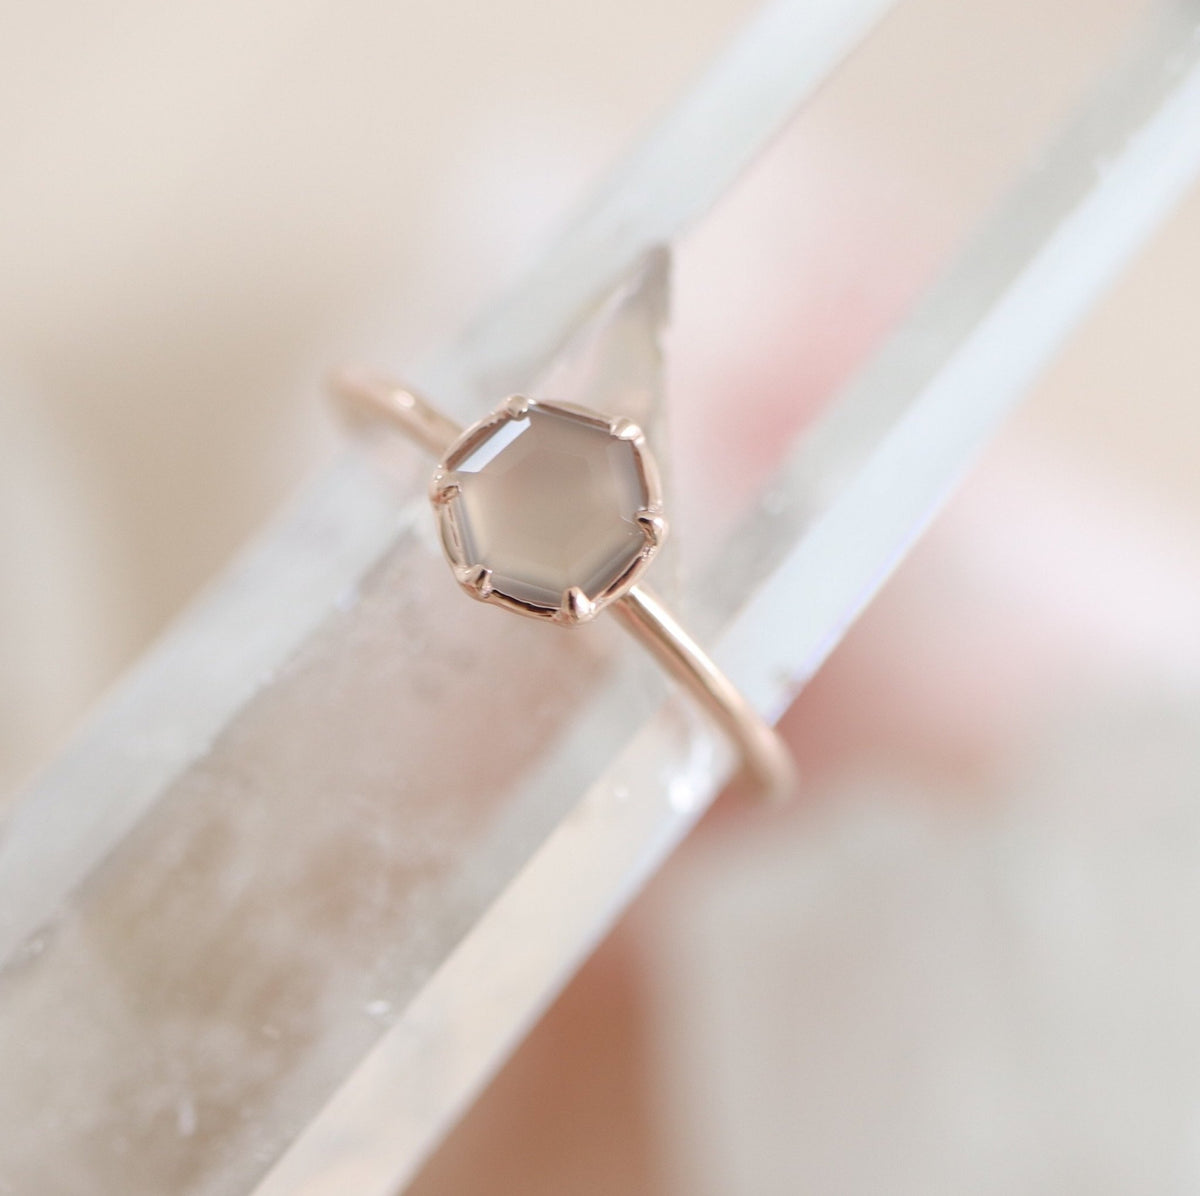 GRACE RING GREY MOONSTONE & ROSE GOLD - SO PRETTY CARA COTTER